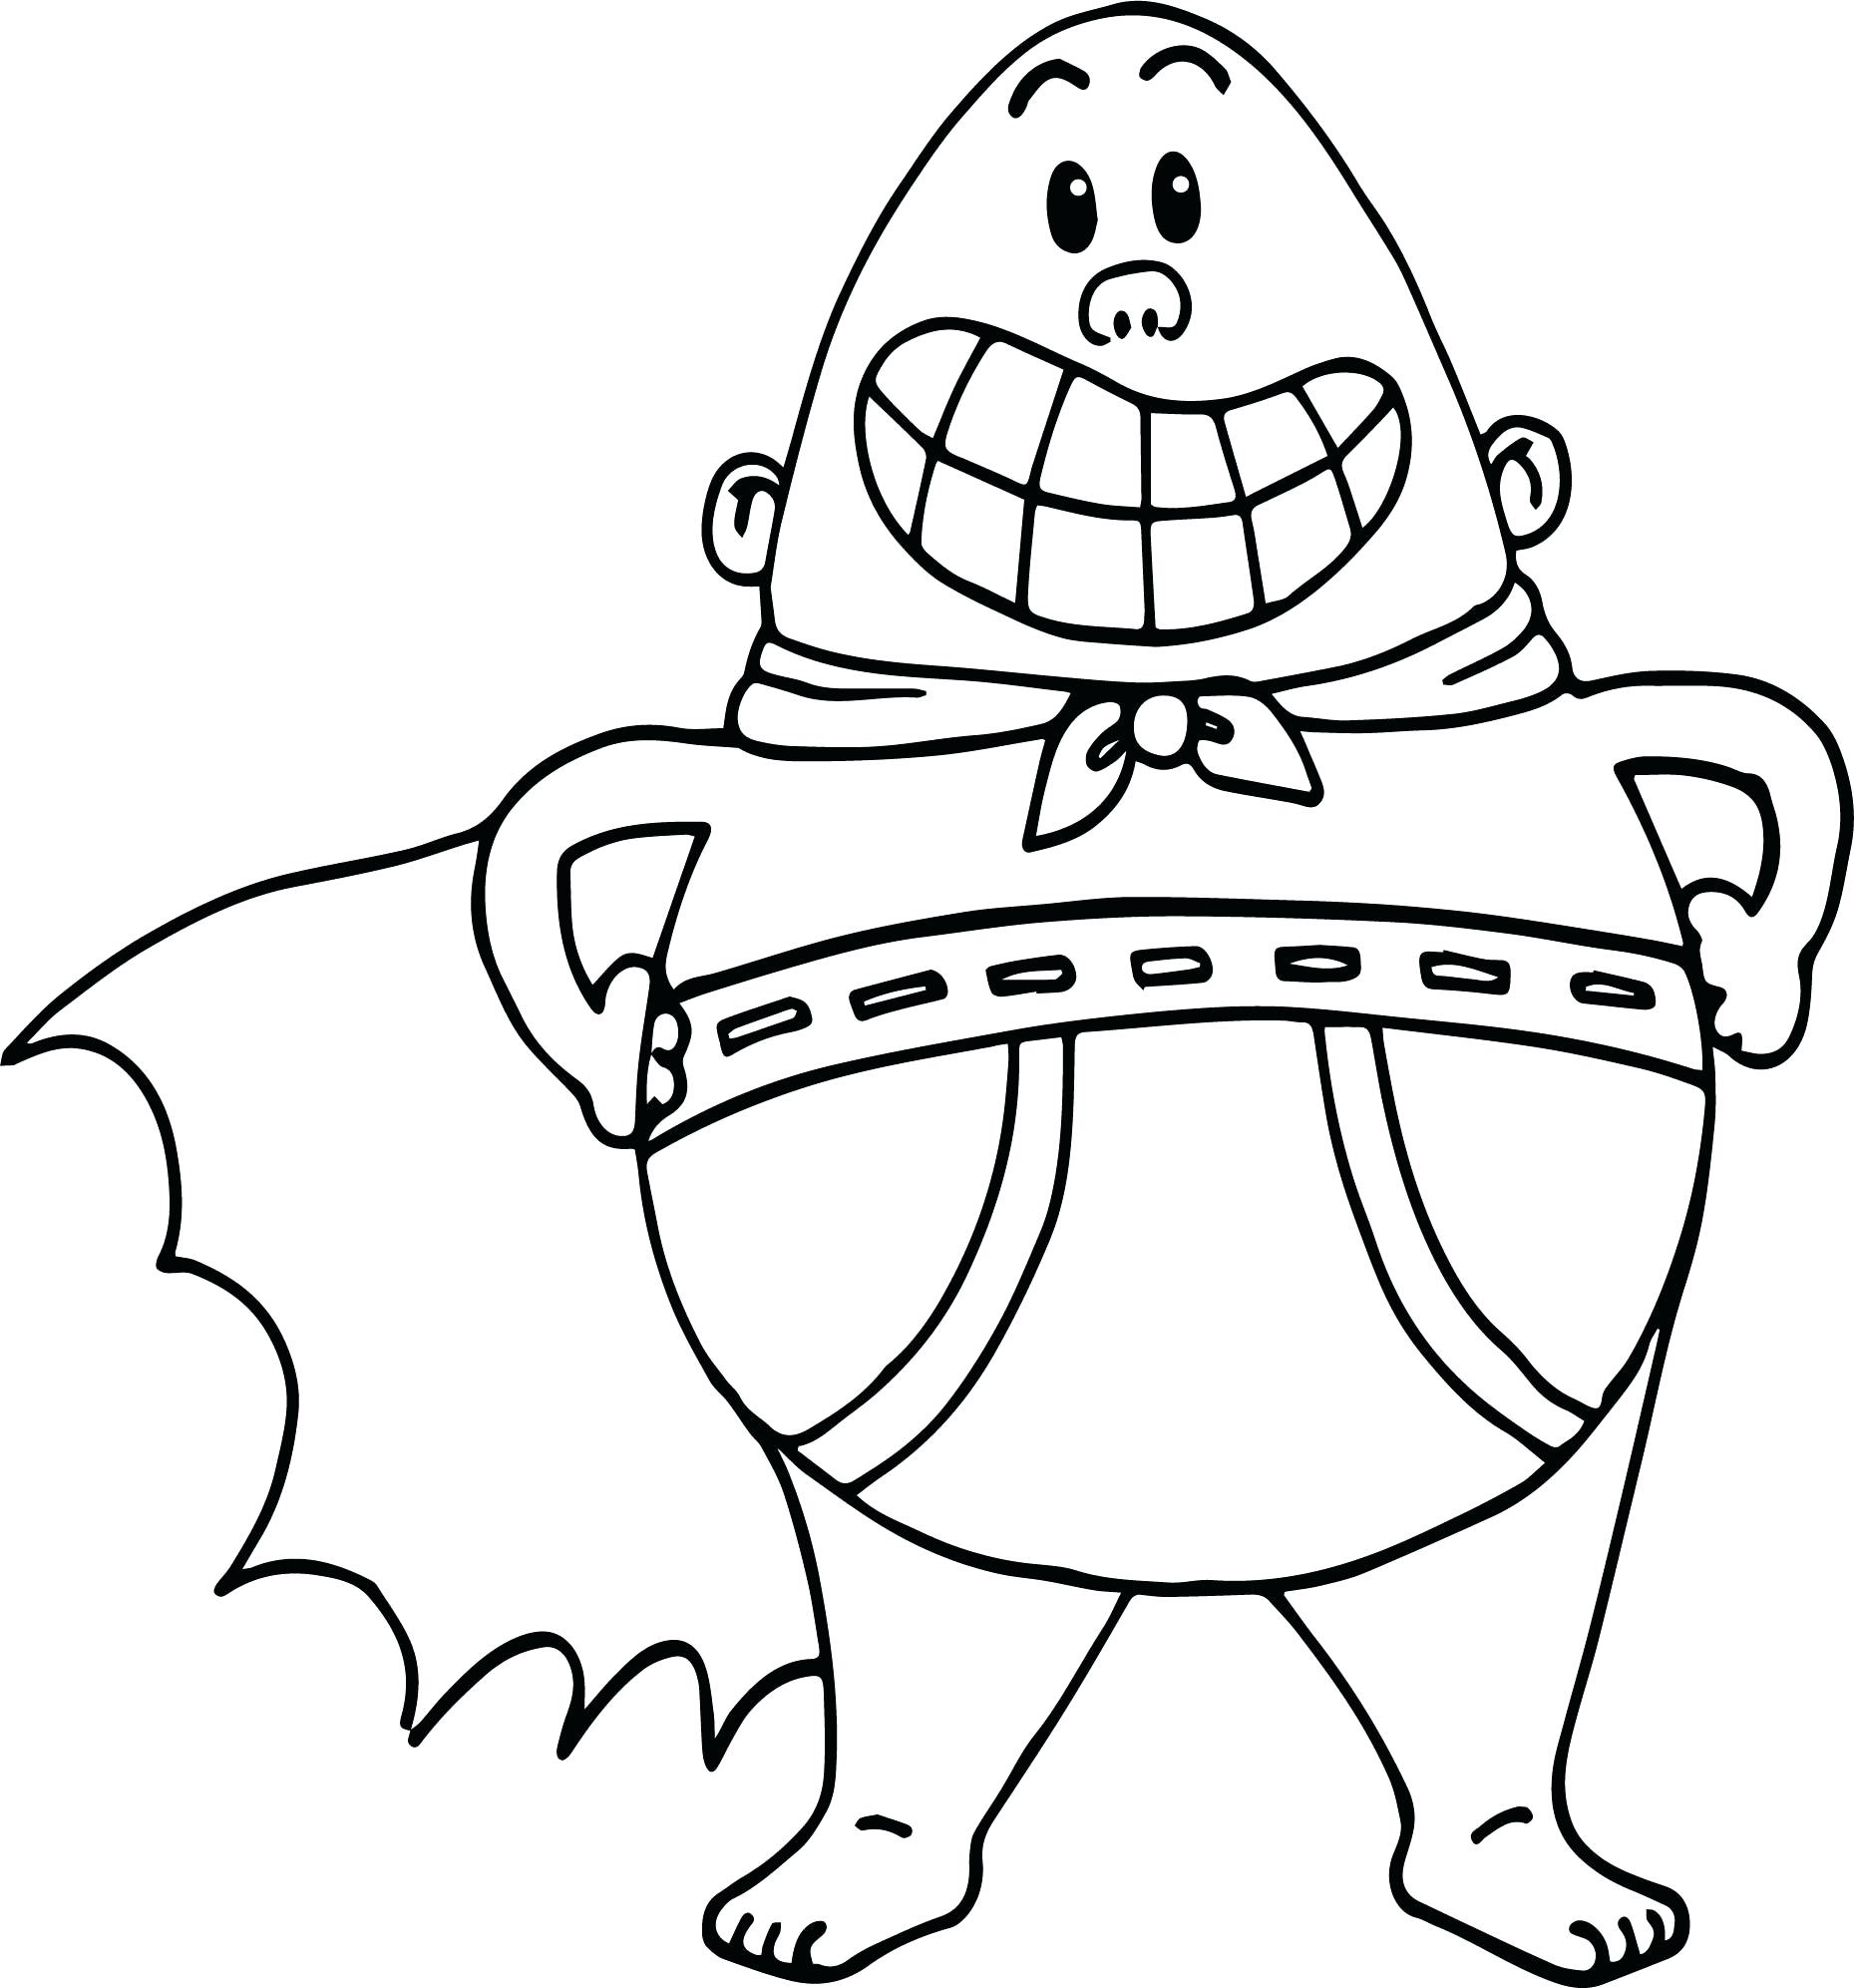 Captain Underpants Coloring Pages Captain Underpants Coloring Pages Coloring Pages